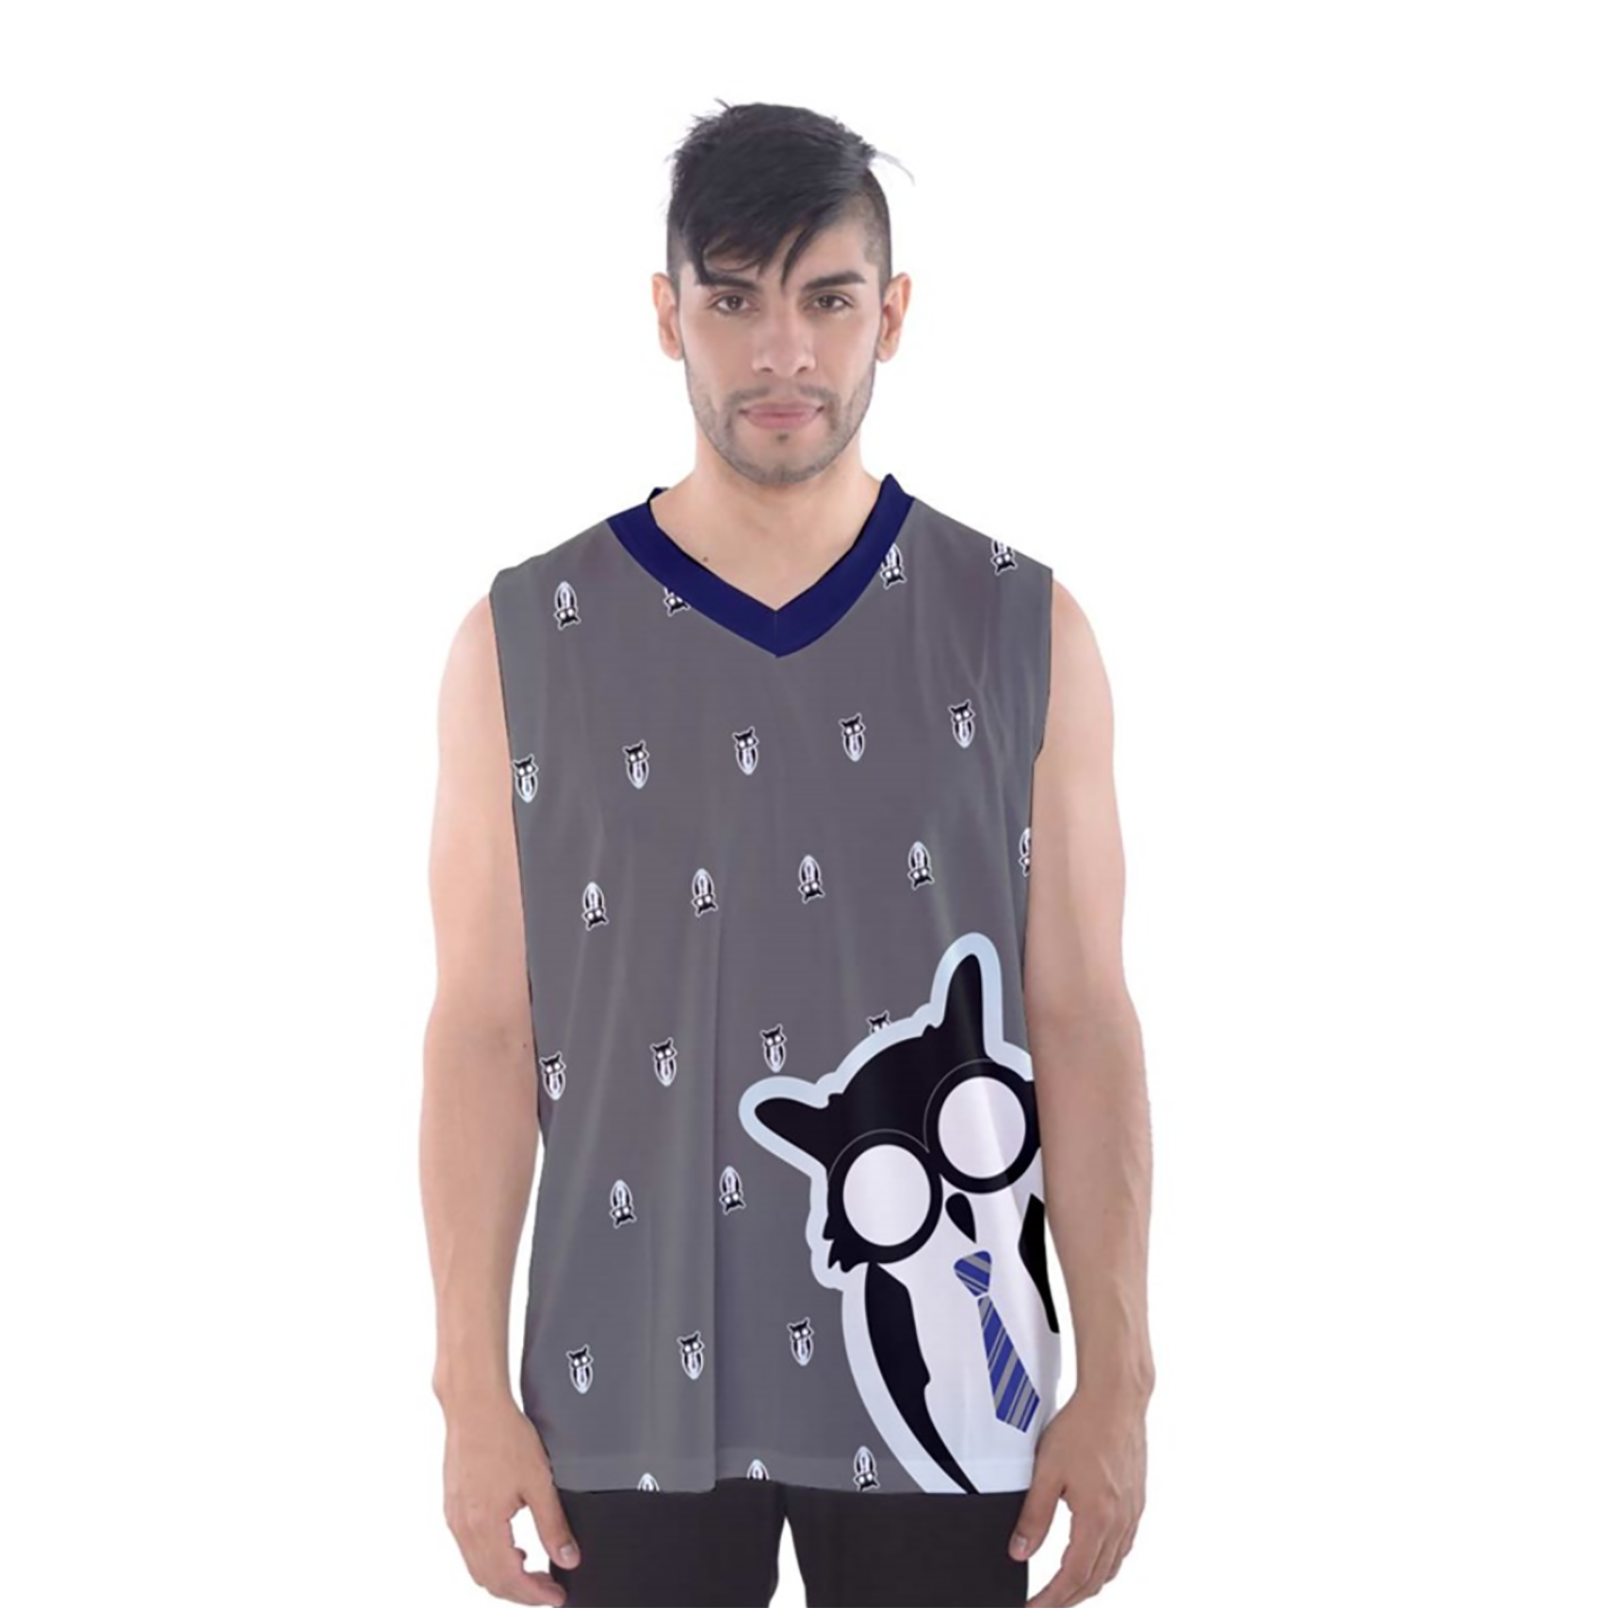 Blue/Gray Owl Men's Tank Top - Inspired by Ravenclaw